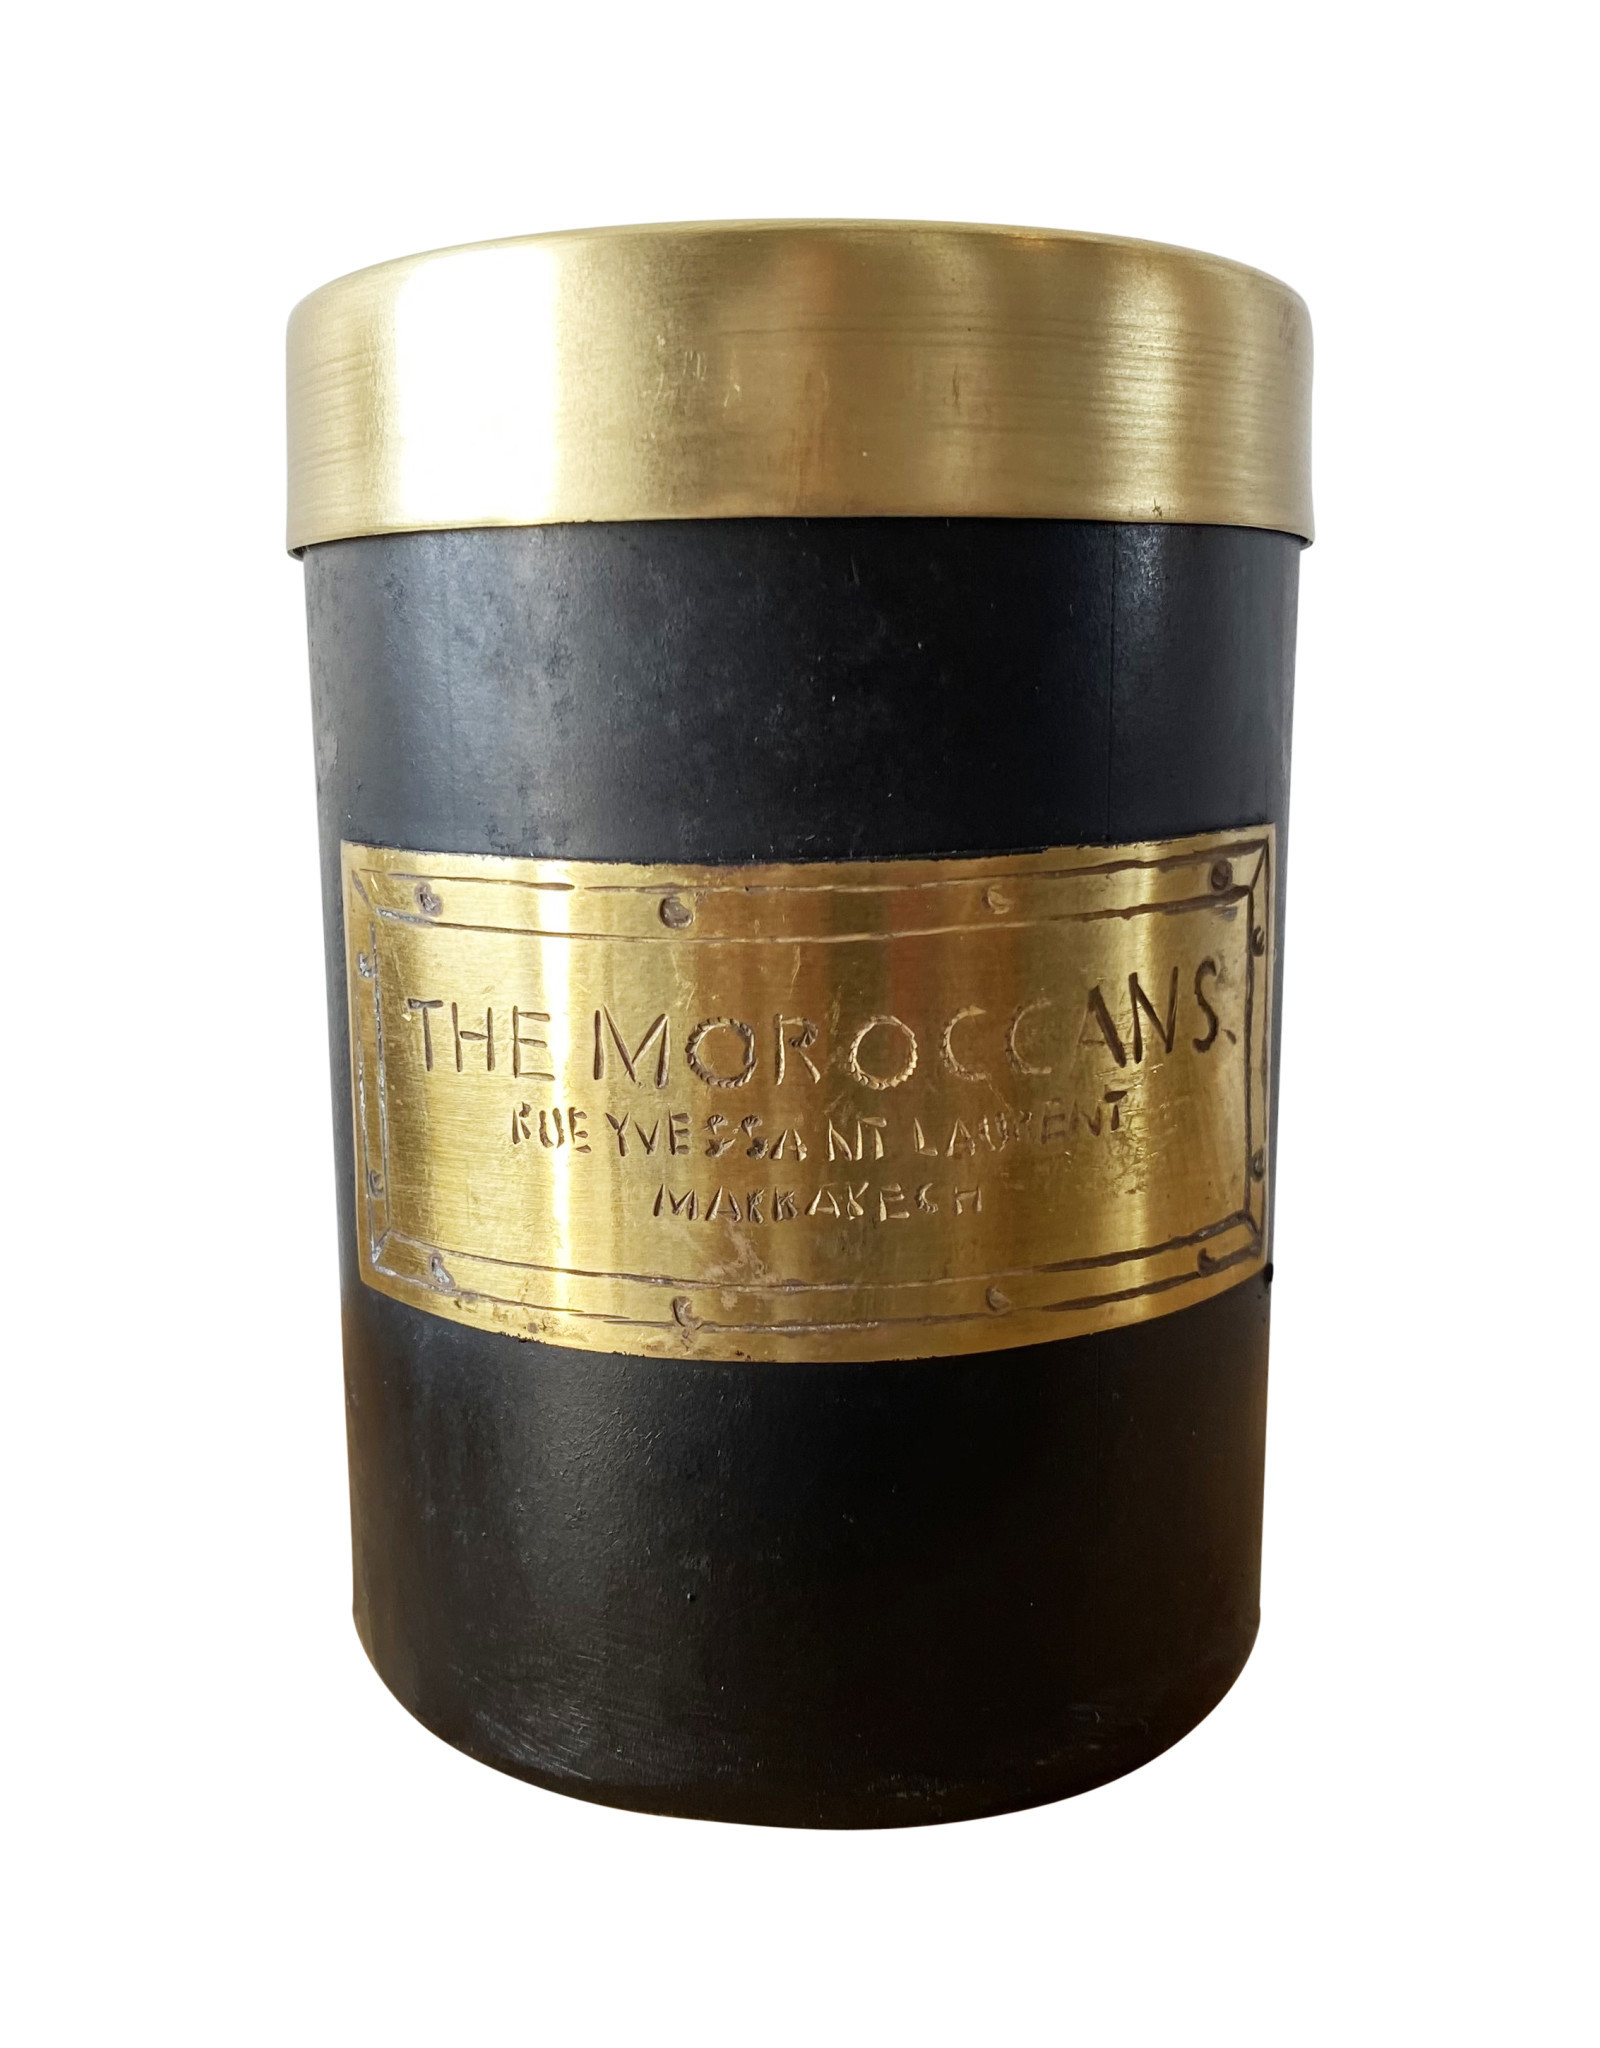 The Moroccans Moroccan Candle